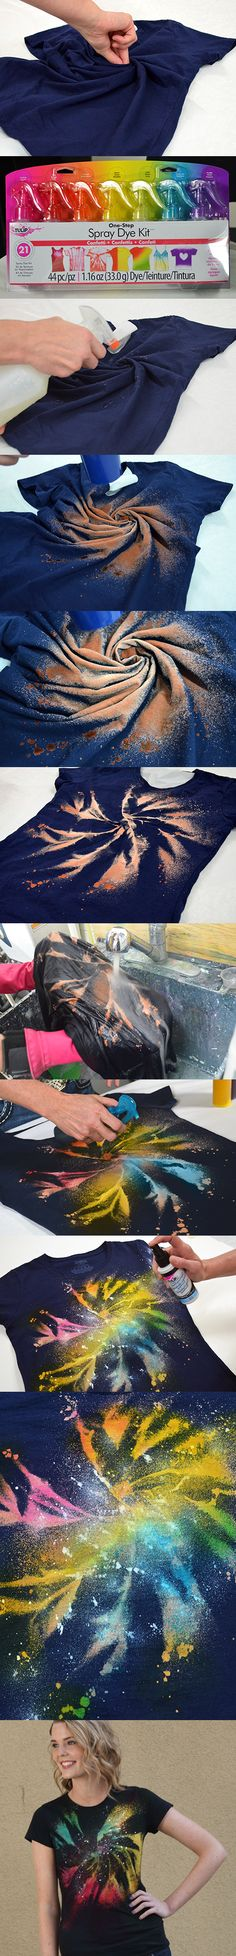 Hey space nerds! You can DIY an entire galaxy this weekend. Check out this fun how-to:Here's what you need to pick up:Tulip One-Step Spray Dye KitTulip Fabric Spray PaintTulip Surface CoverBleachSpray bottleSinkWasher/dryerScissorsDark colored t-shirt (black, brown, or navy)Read more VIA I Love to C...